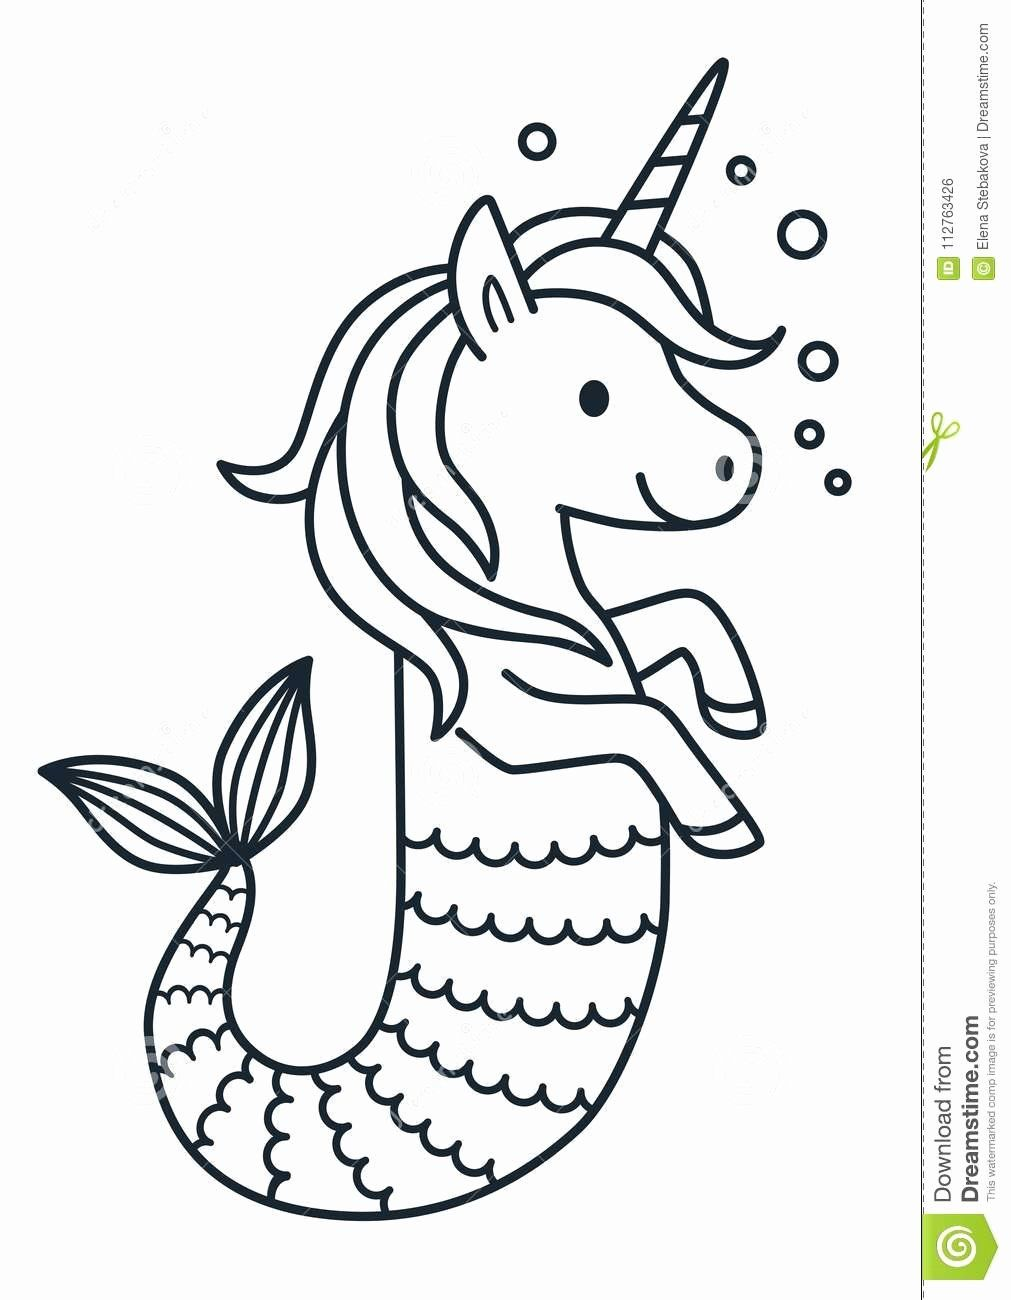 Unicorn Printable Coloring Pages Unique Unicorn Coloring Pages